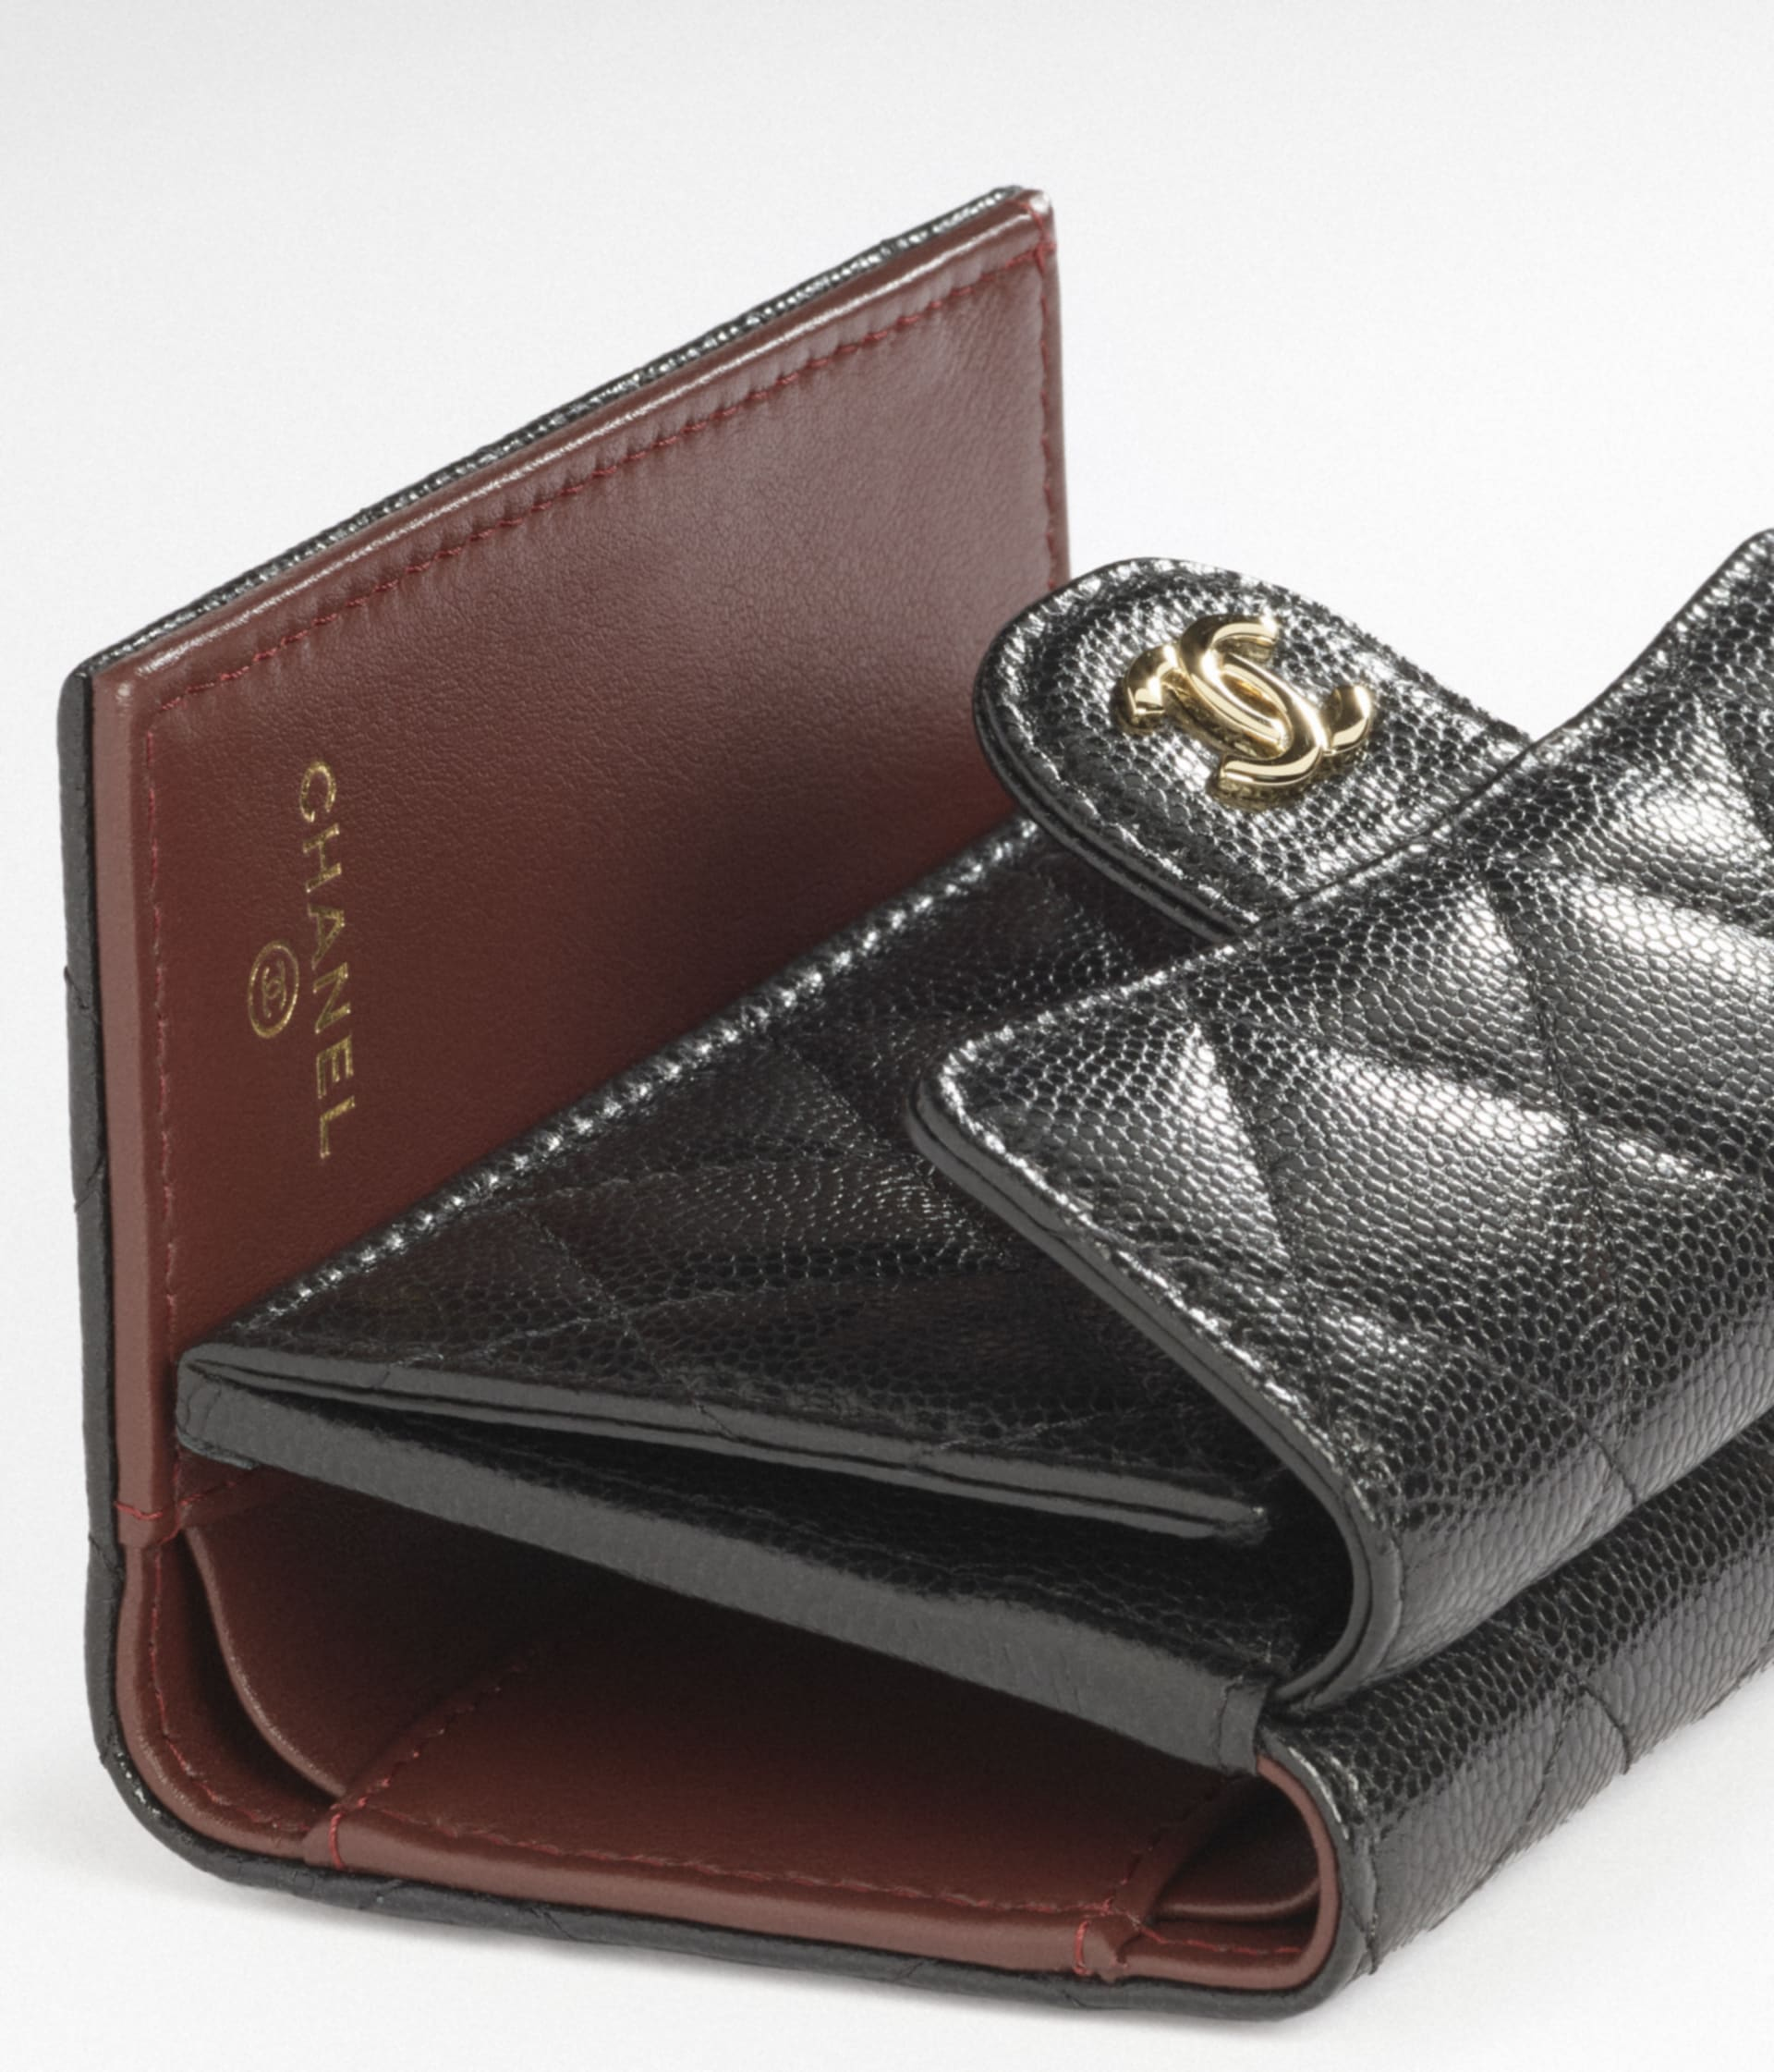 image 3 - Classic Small Flap Wallet - Grained Calfskin & Gold-Tone Metal - Black